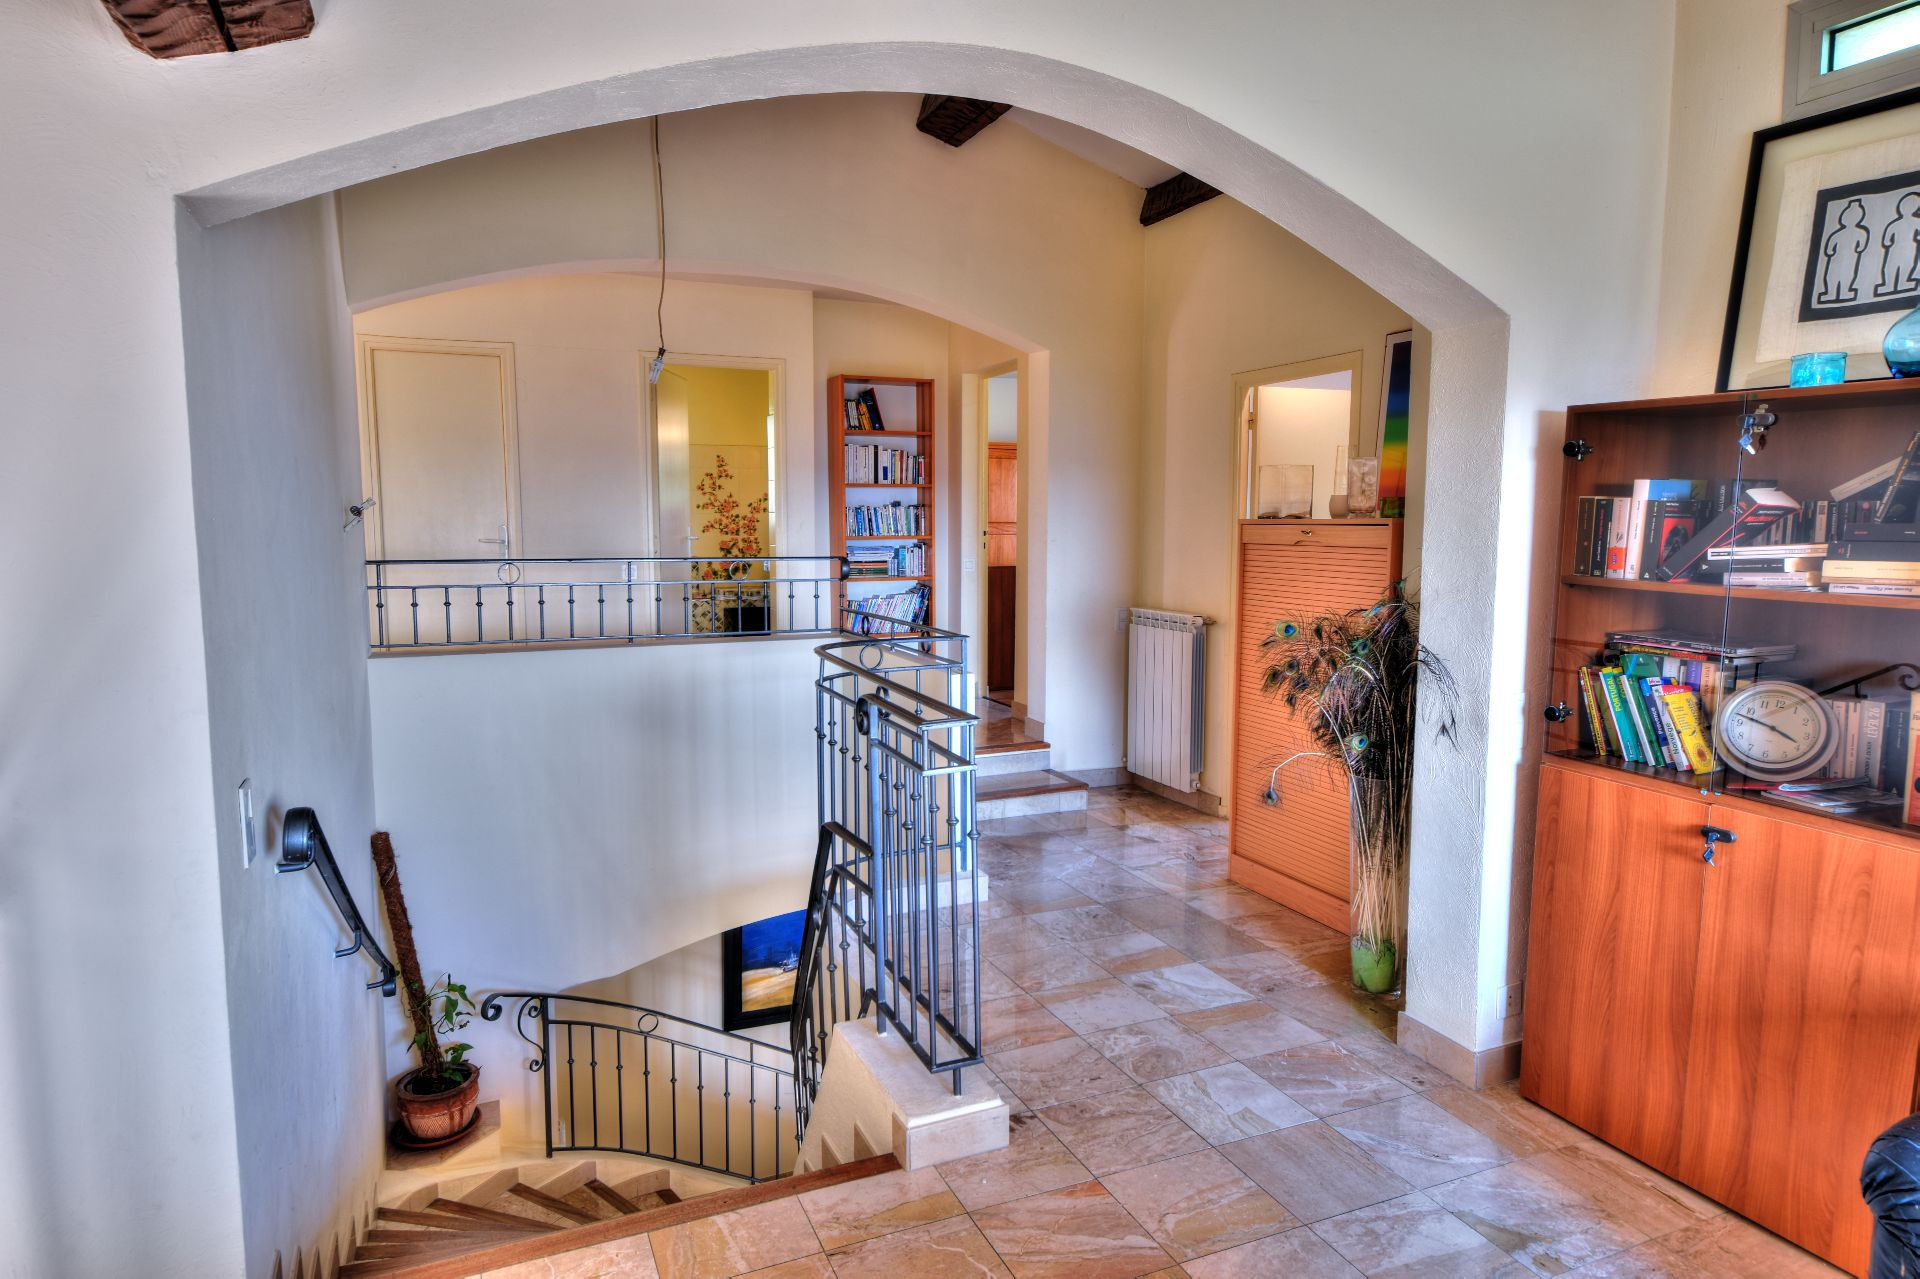 85/5000 Villa 328 m² panoramic view, with separate apartment, Draguignan, var, Provence